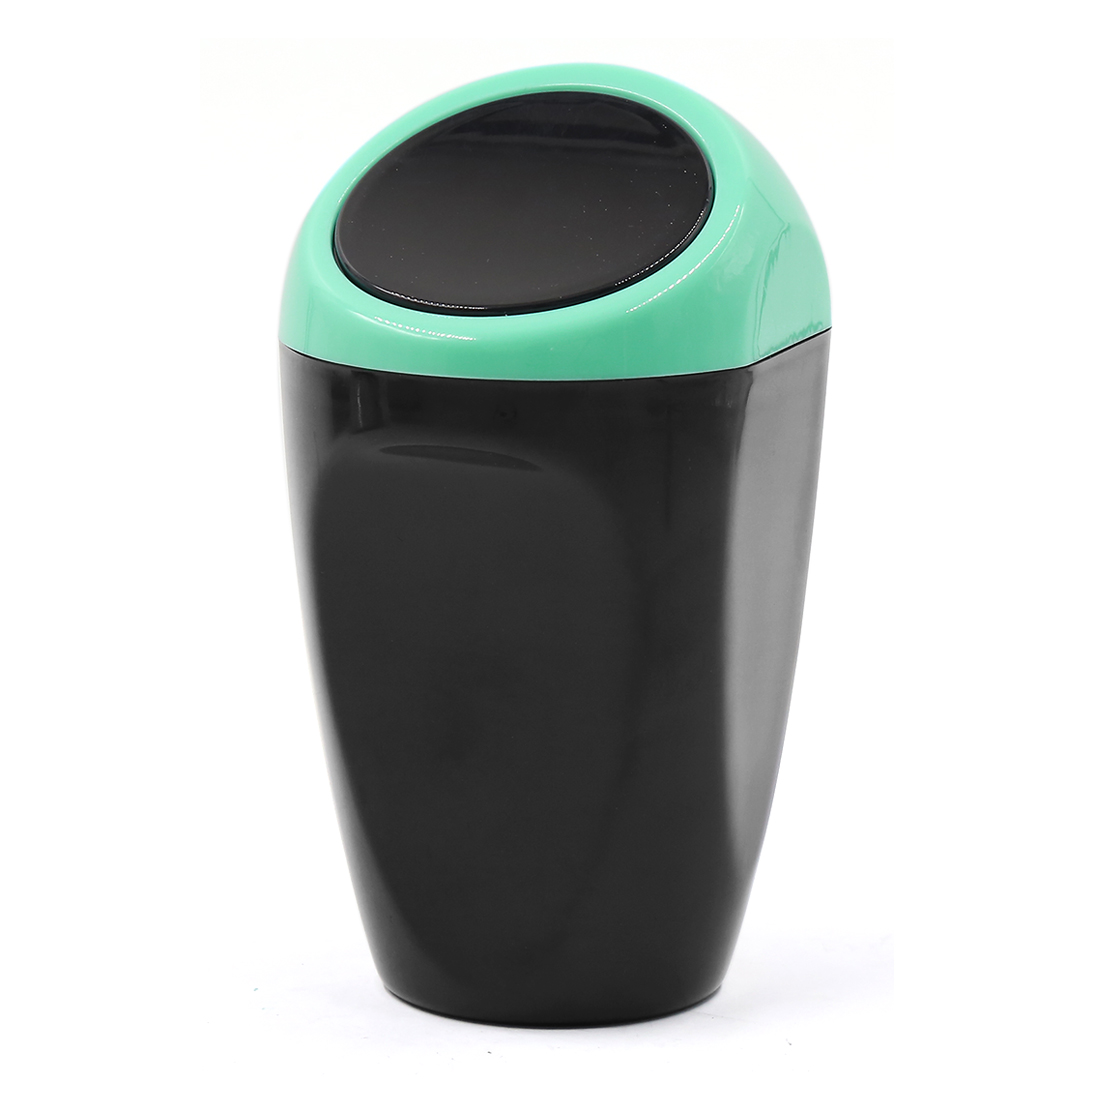 Auto Vehicle Car Trash Rubbish Bin Office Home Garbage Can Dust Case Holder Black Blue